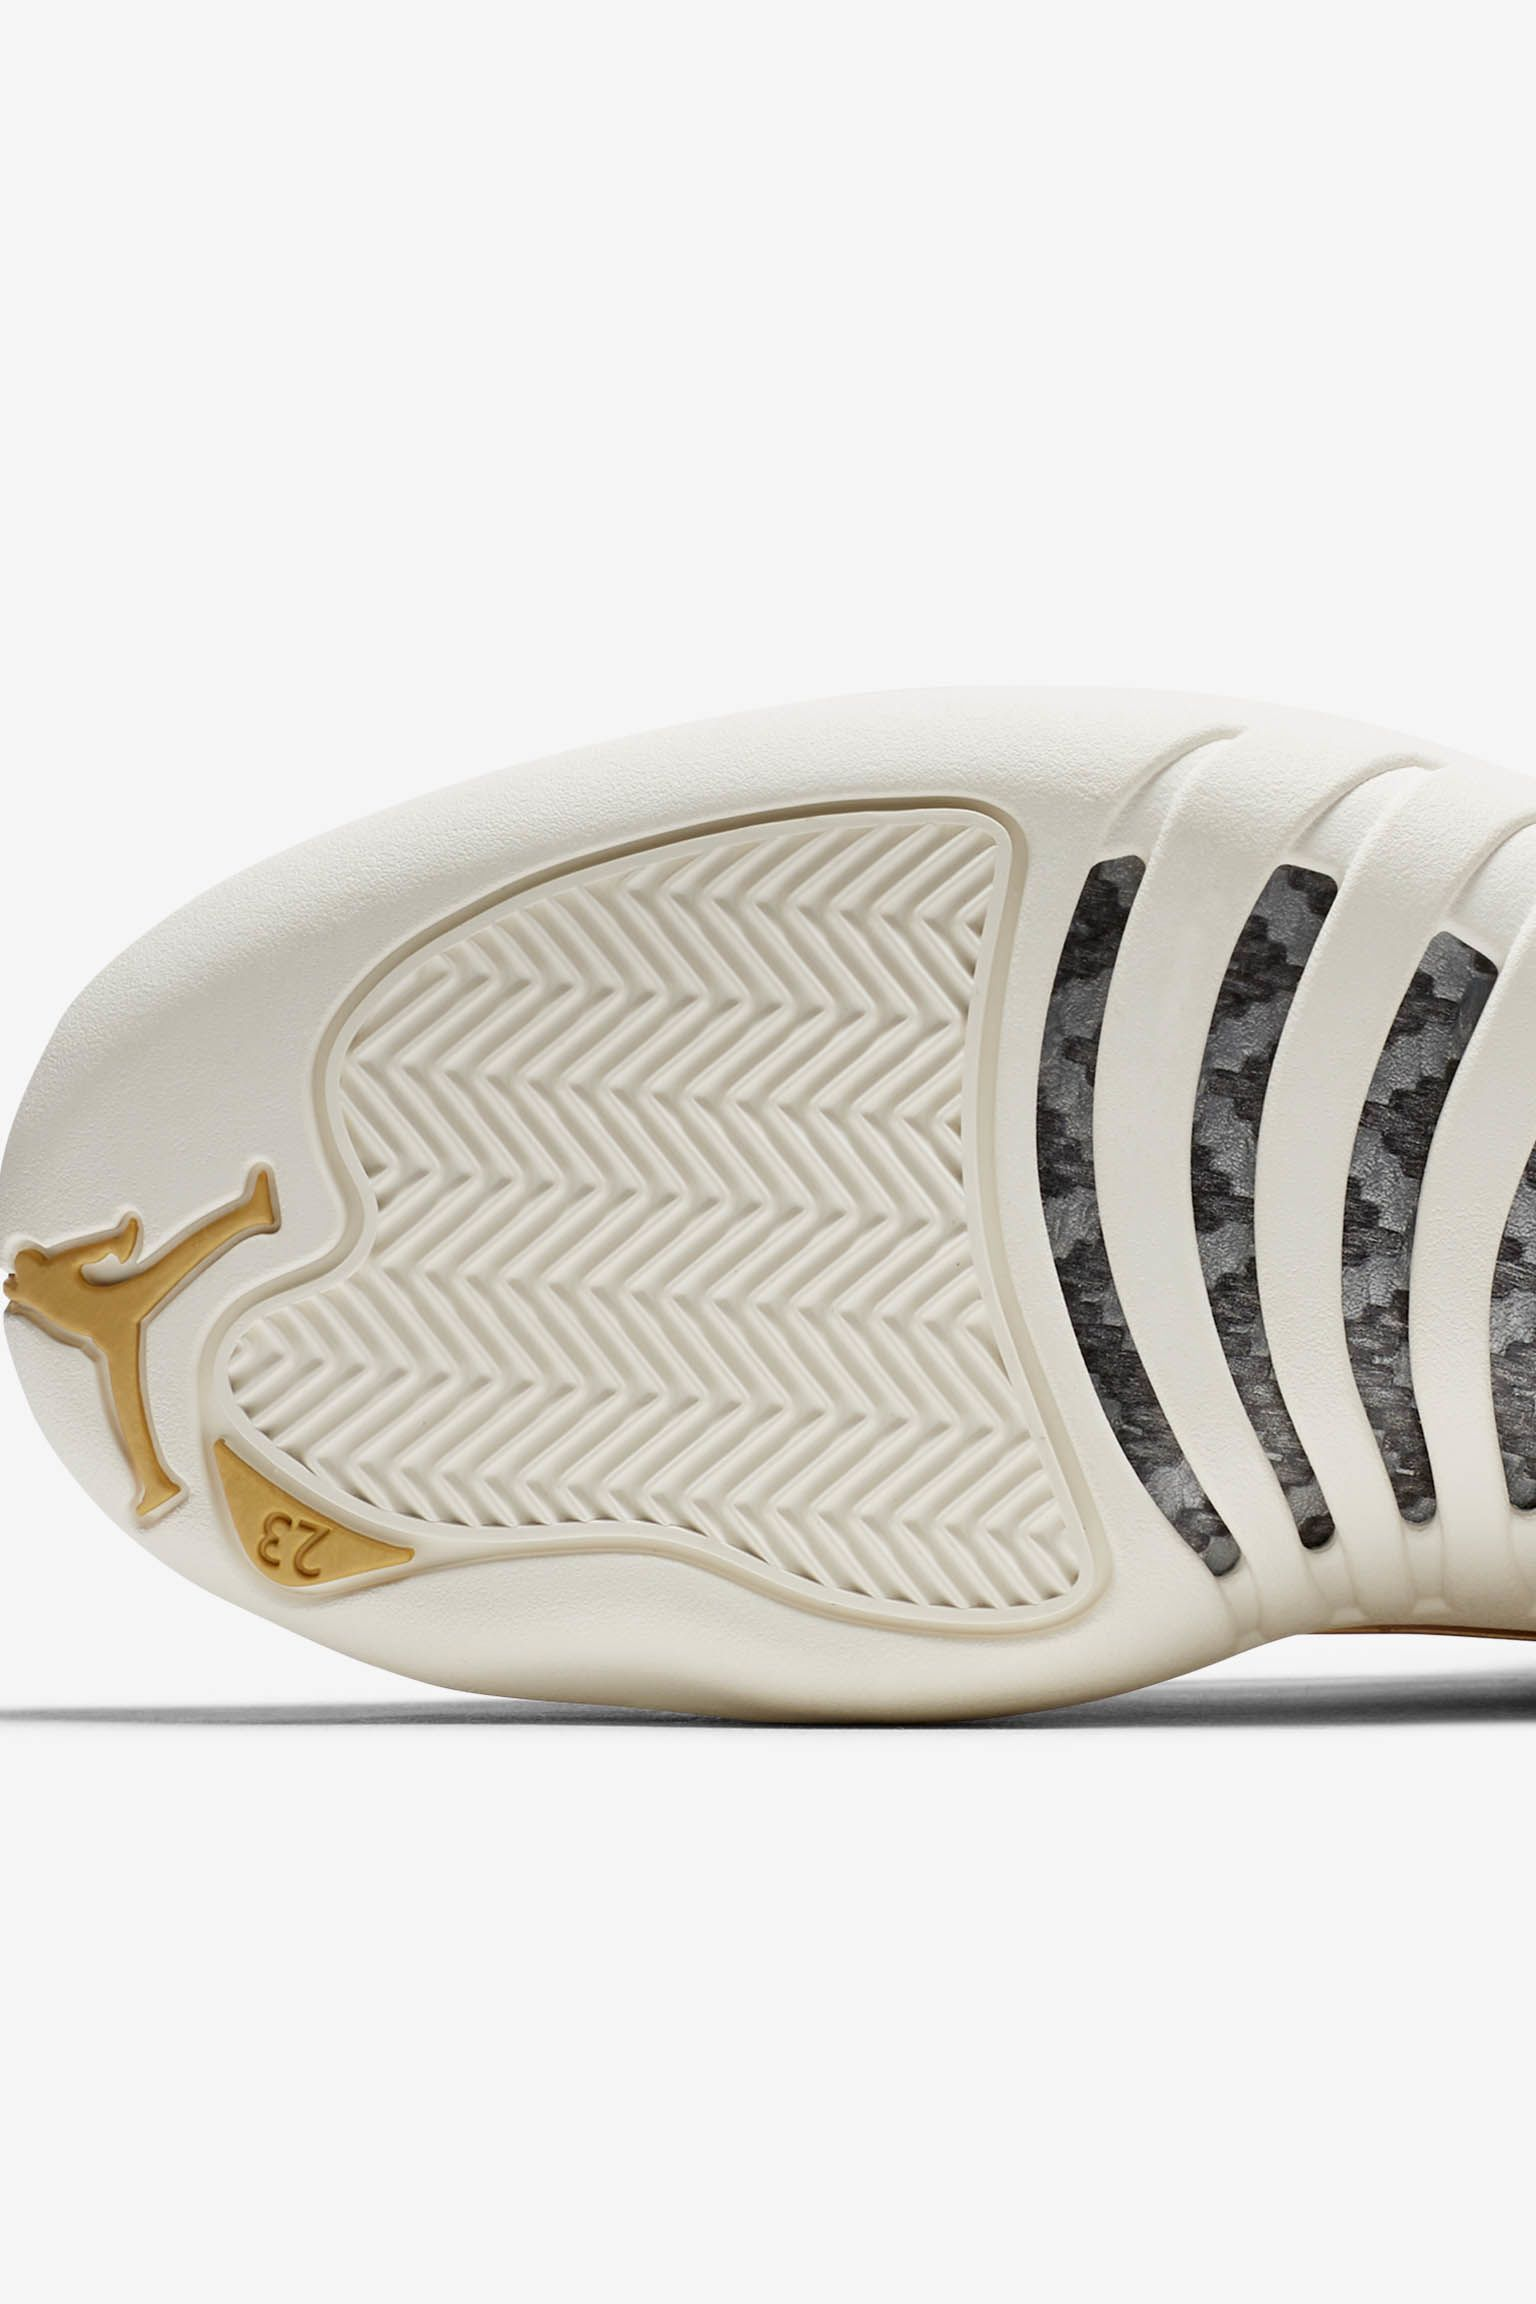 Women's Air Jordan 12 'Vachetta Tan & Metallic Gold' Release Date